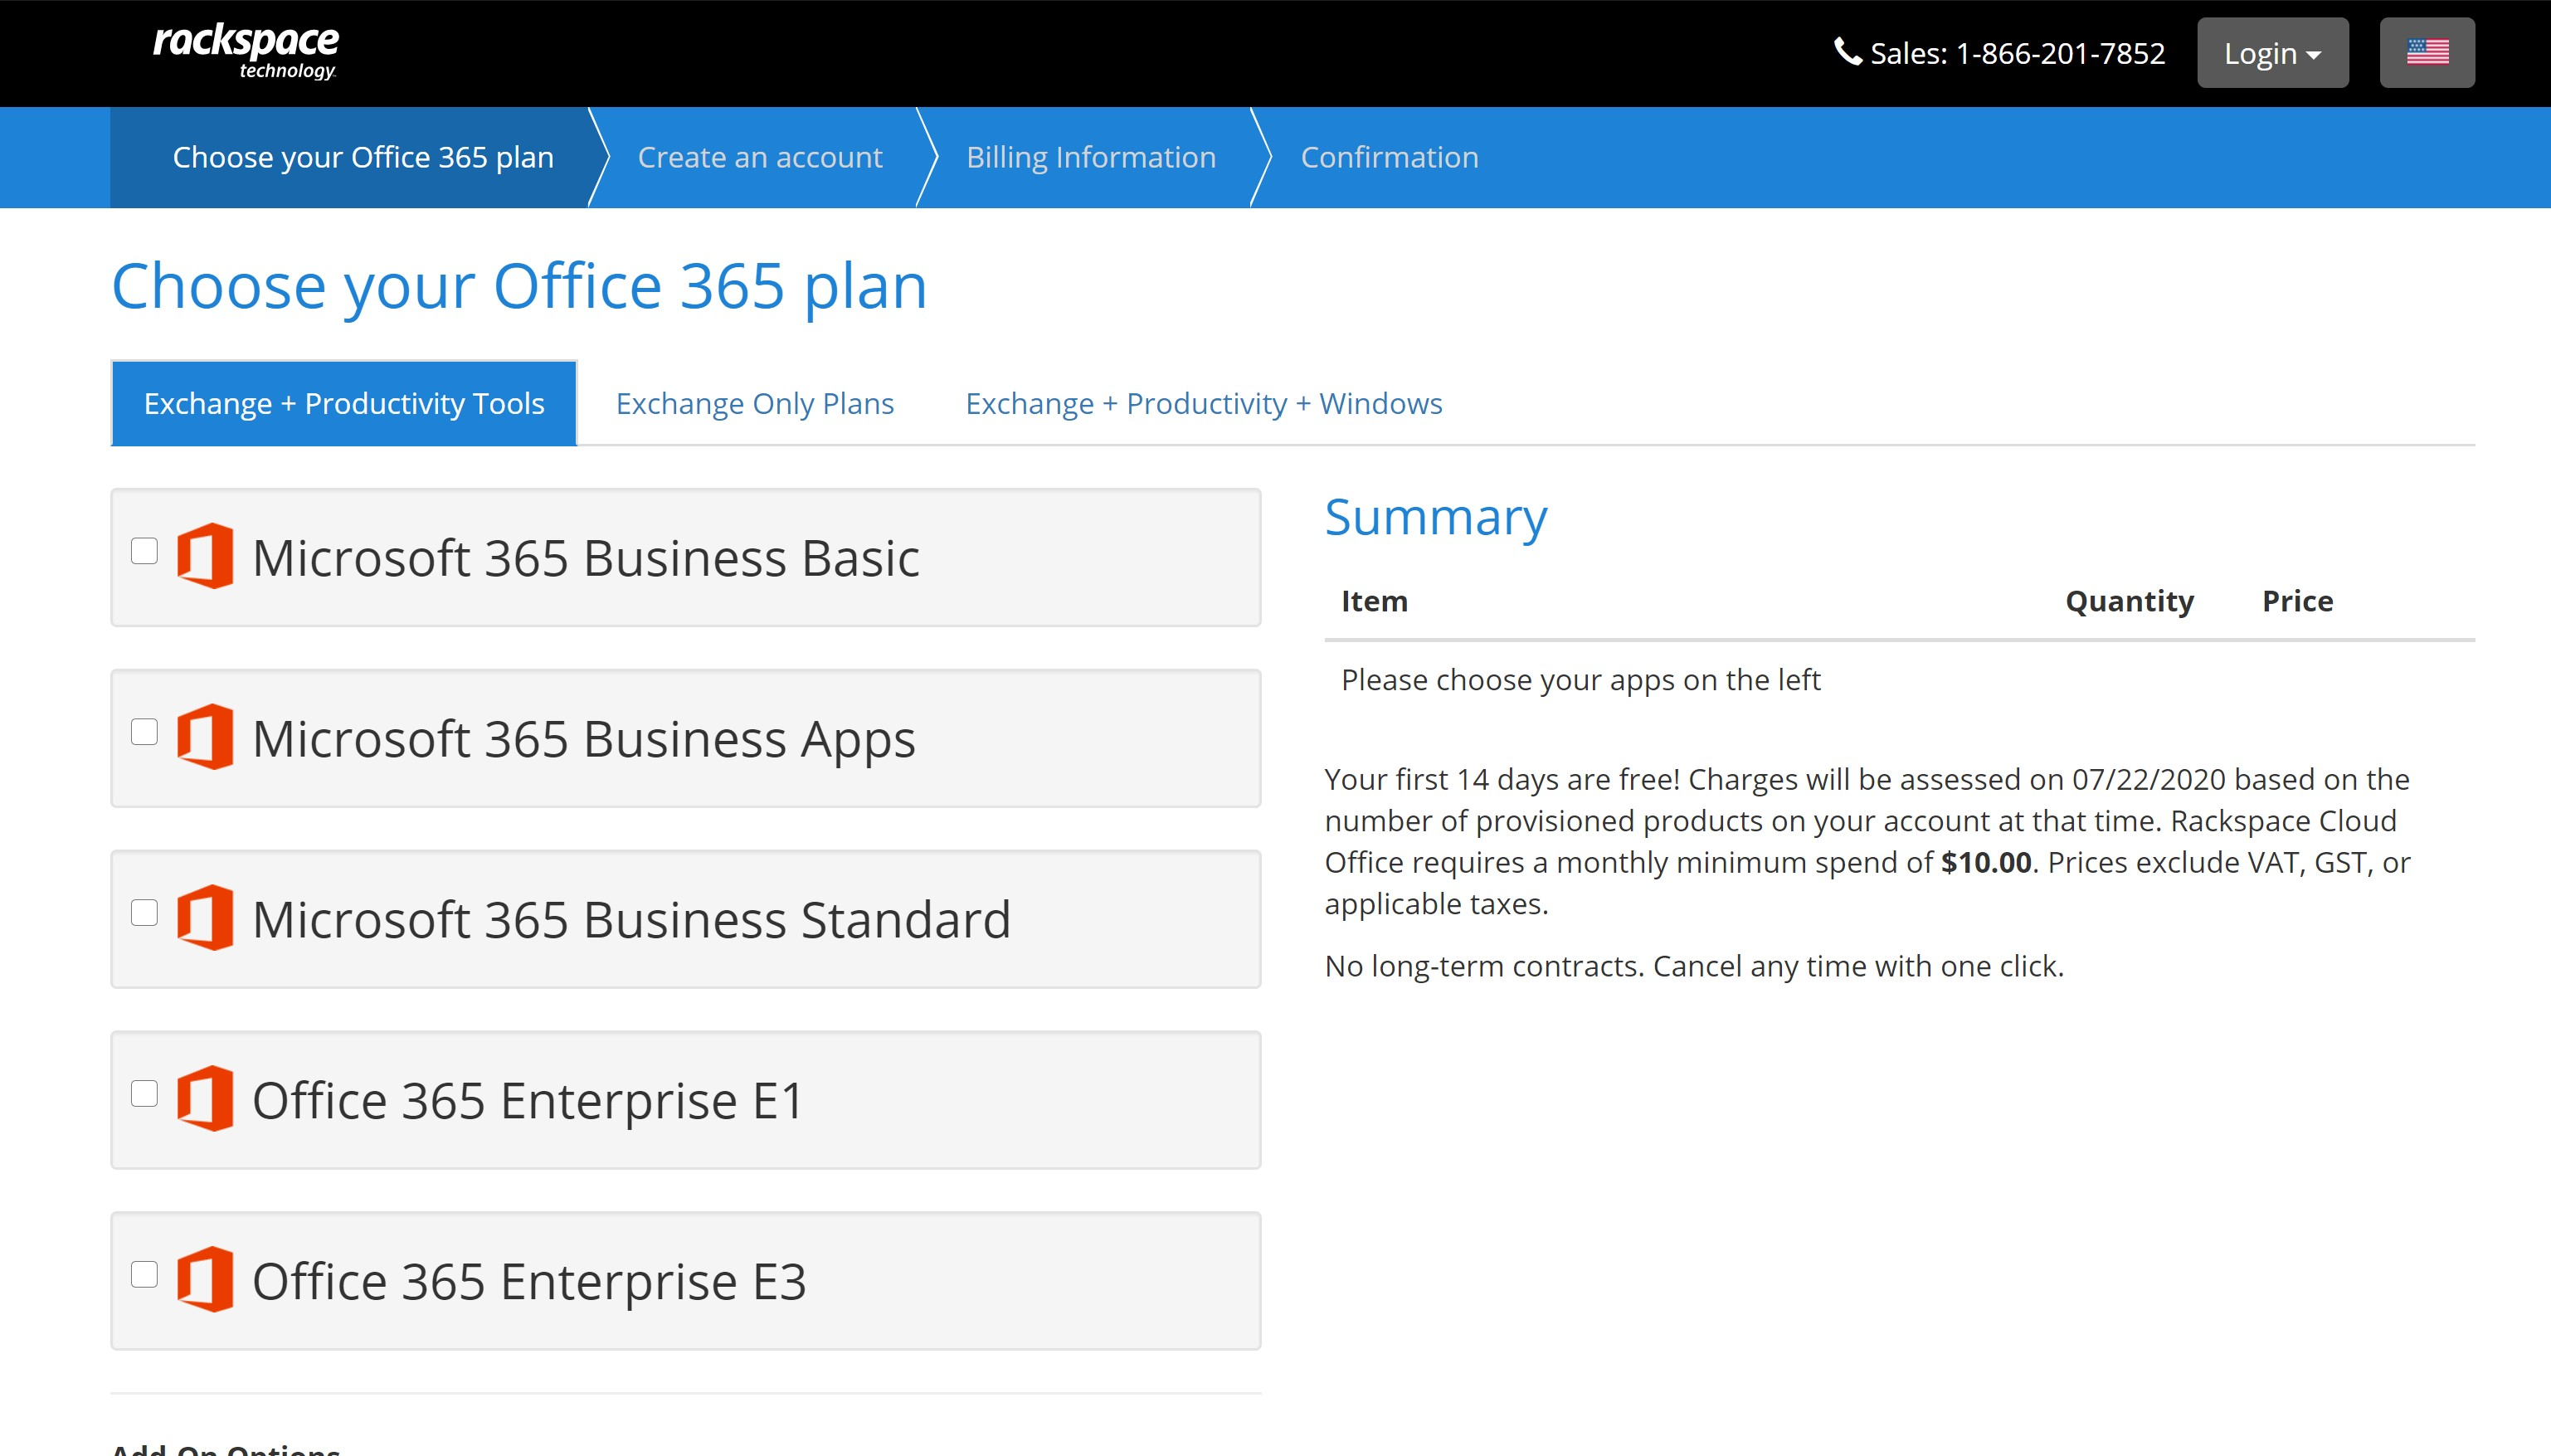 Get Office 365 $3 using my referral link